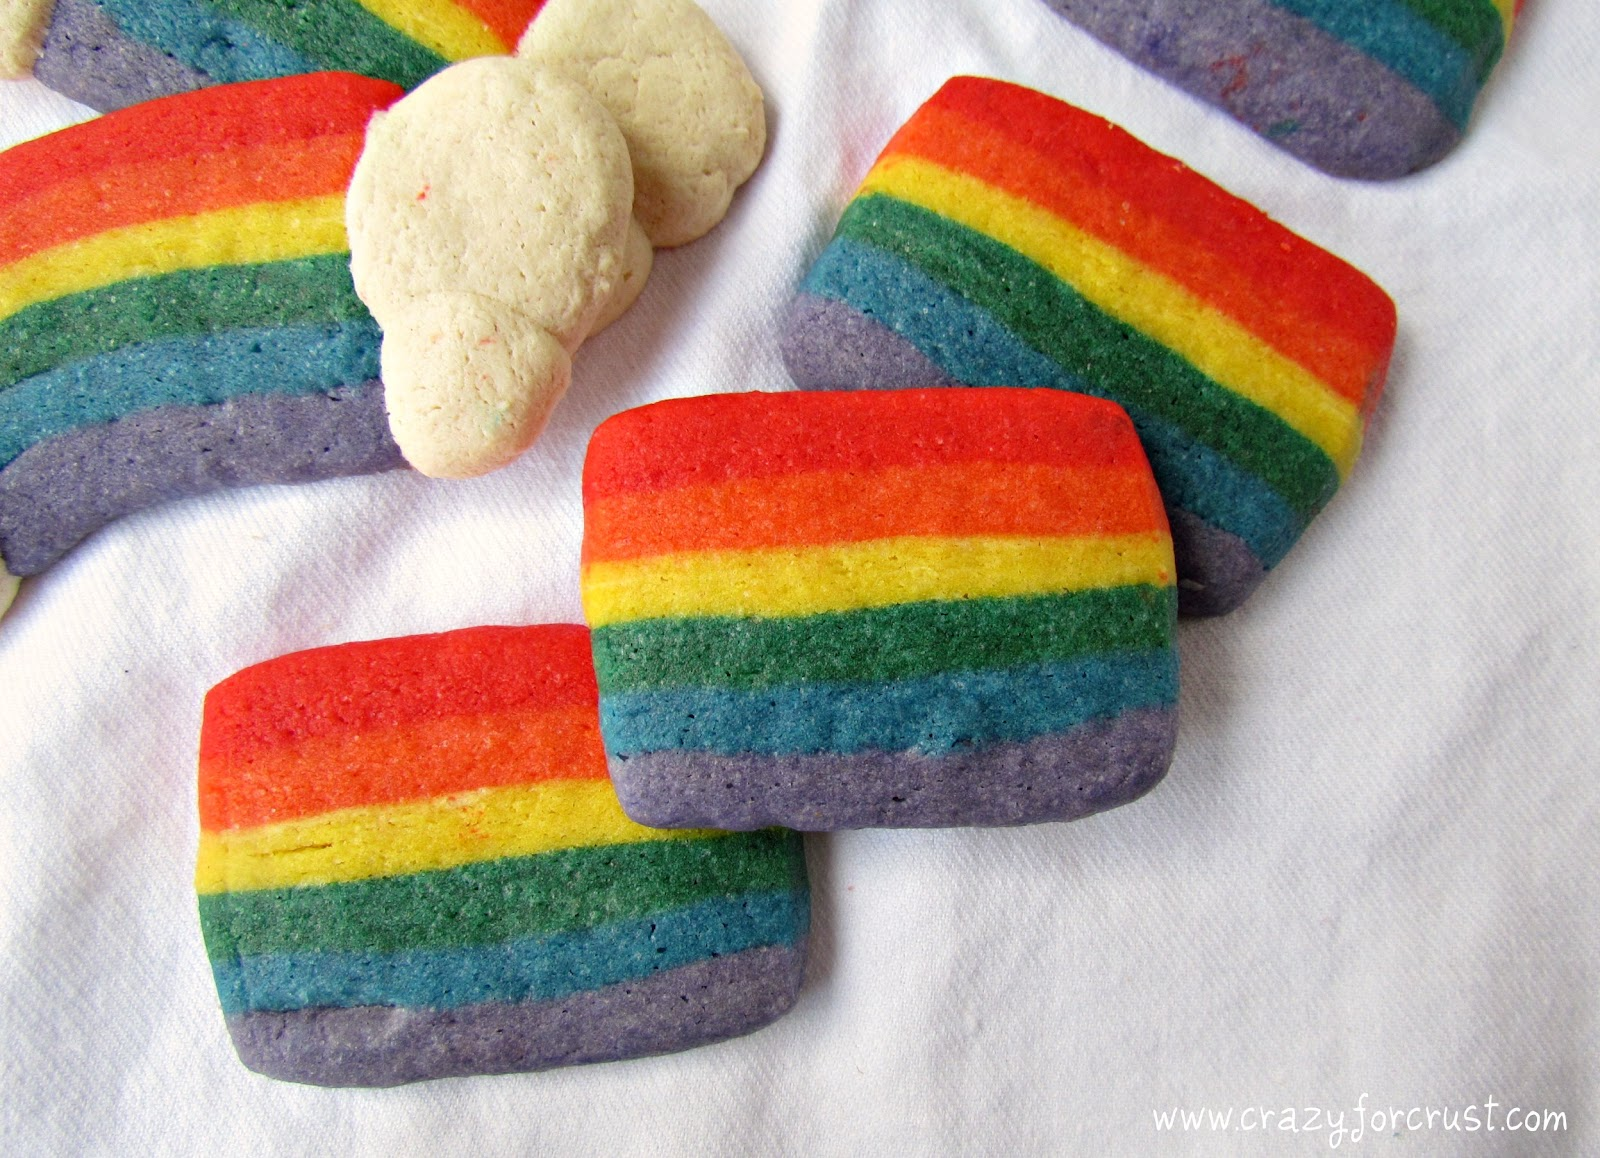 Rainbow Cookies {Slice and Bake} - Crazy for Crust